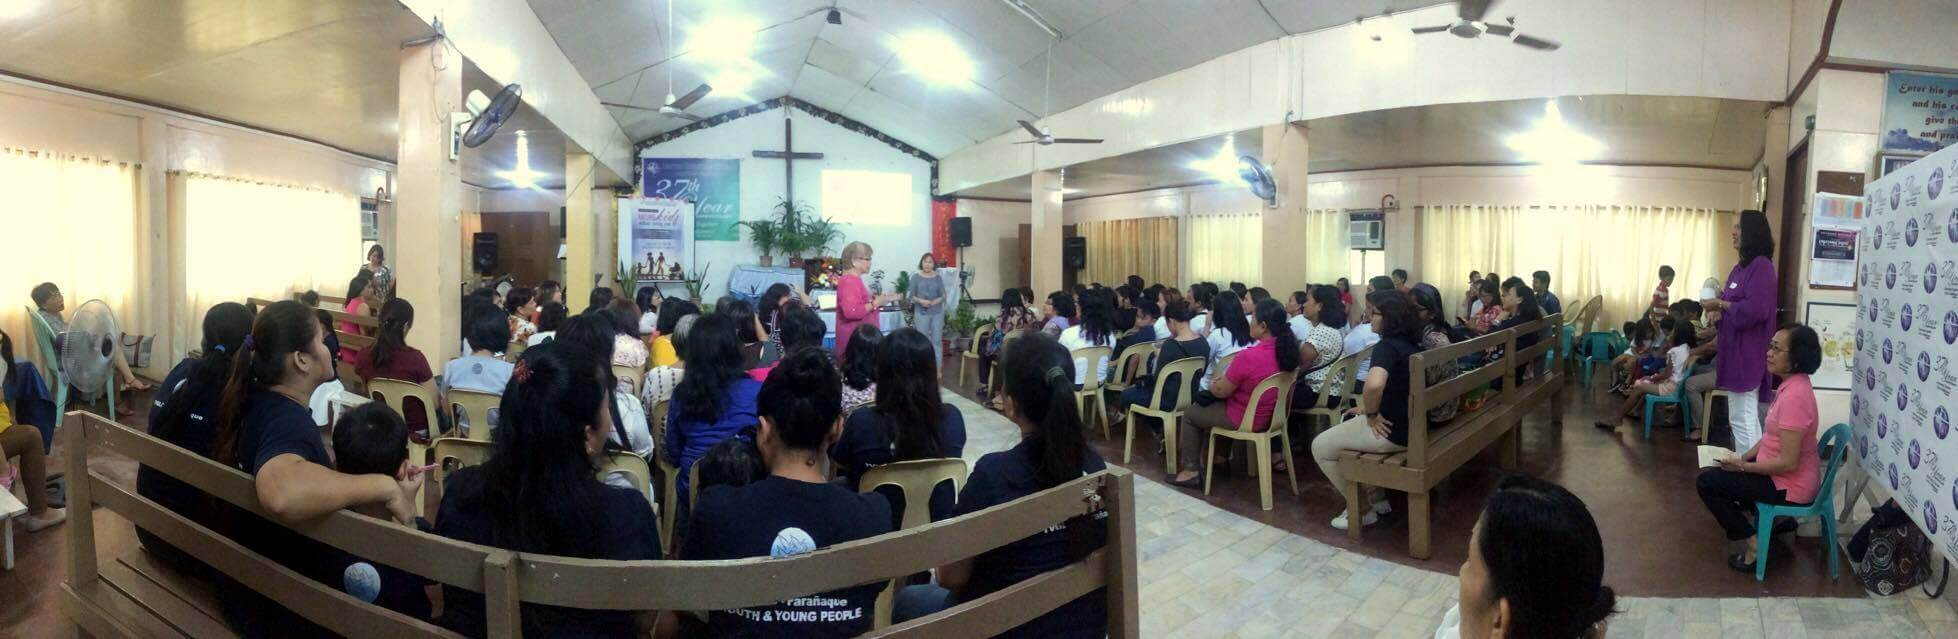 SOMMABCA Parenting Seminar - 3rd Quarterly Fellowship